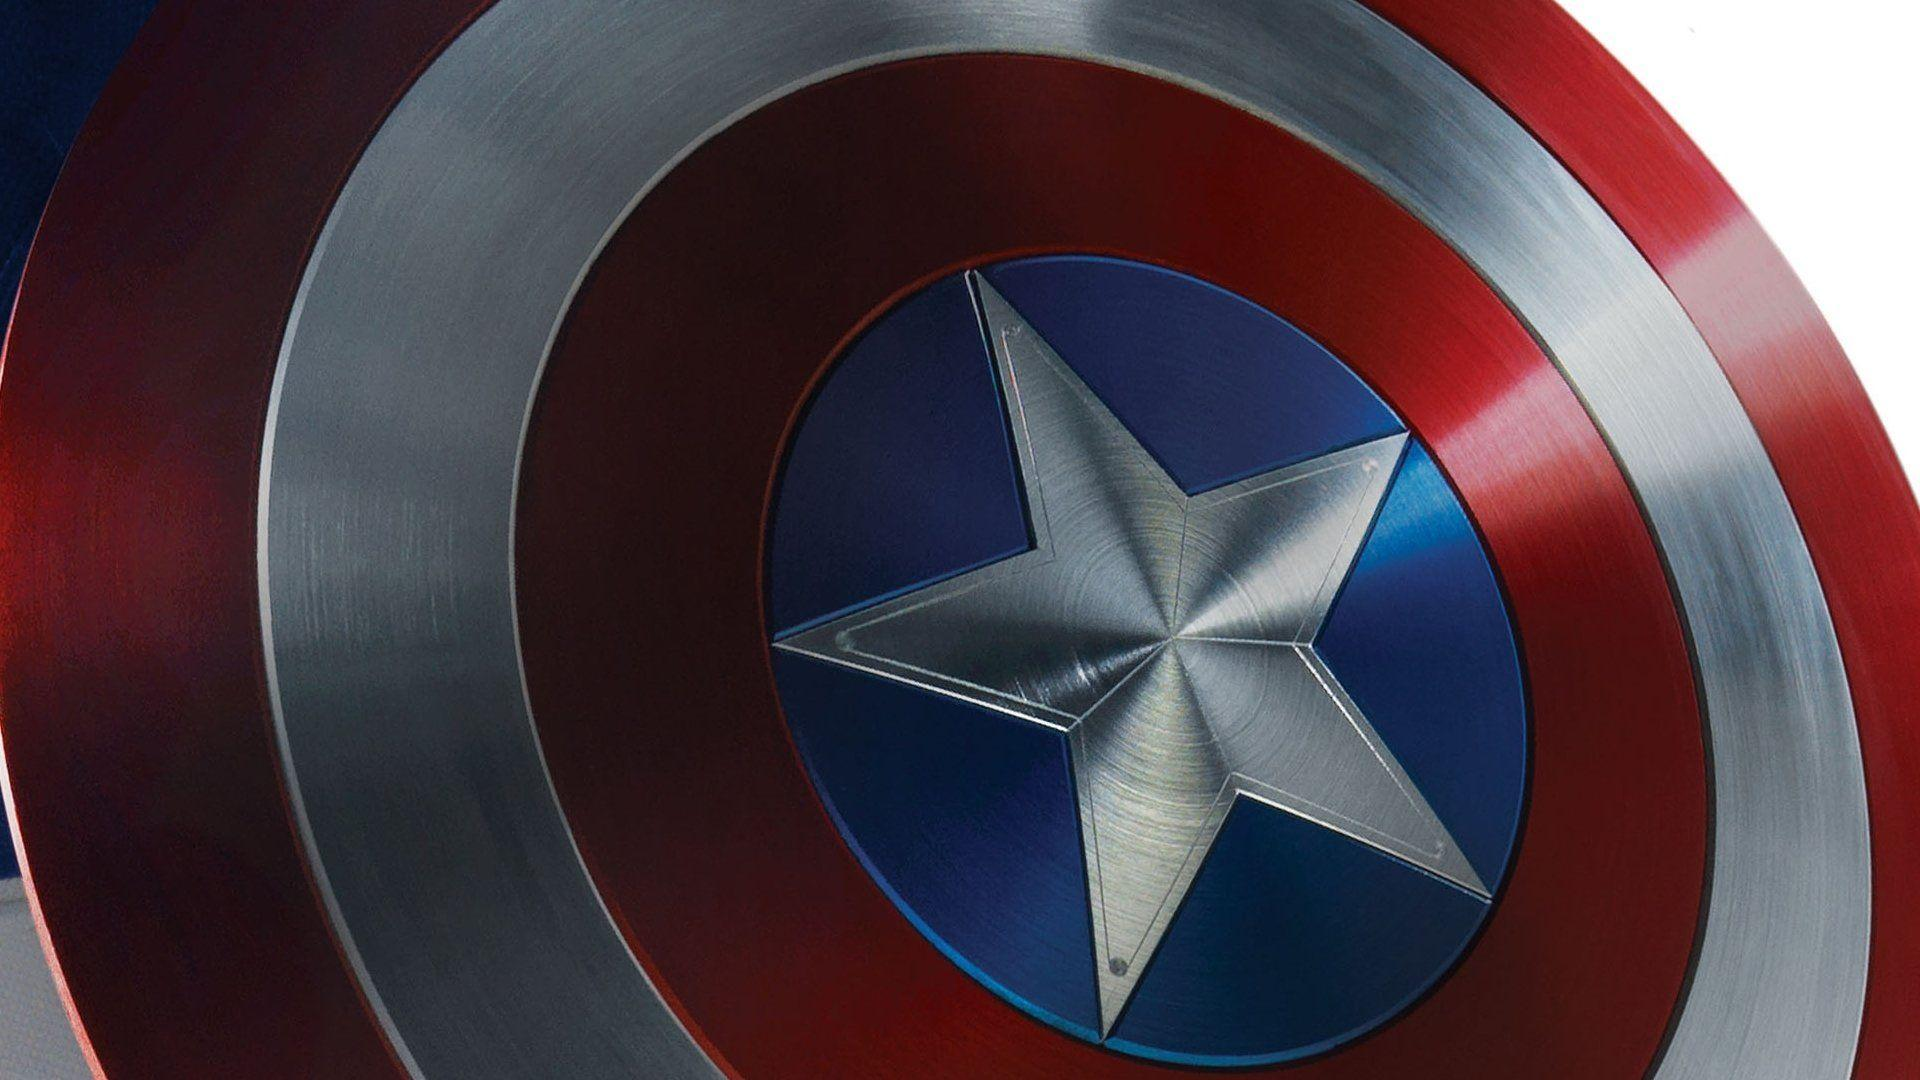 246 Captain America HD Wallpapers | Backgrounds - Wallpaper Abyss